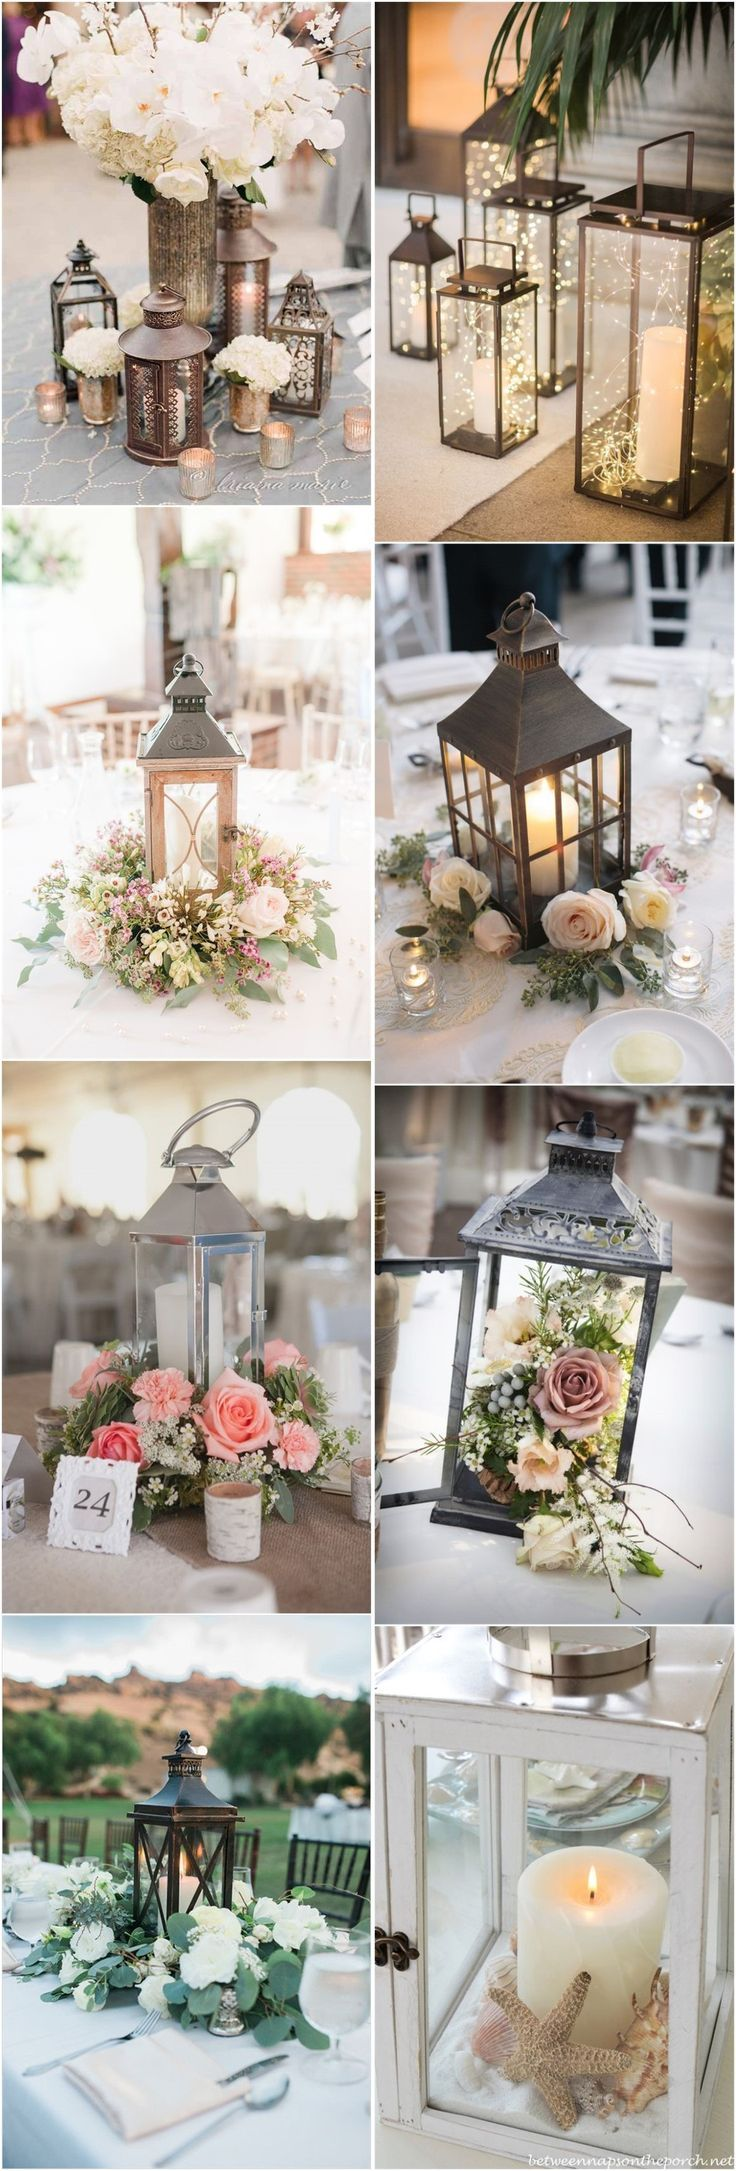 Rustic Weddings » 20 Intriguing Rustic Wedding Lantern Ideas You Will Heart! » ❤️ See more: www.weddinginclud...